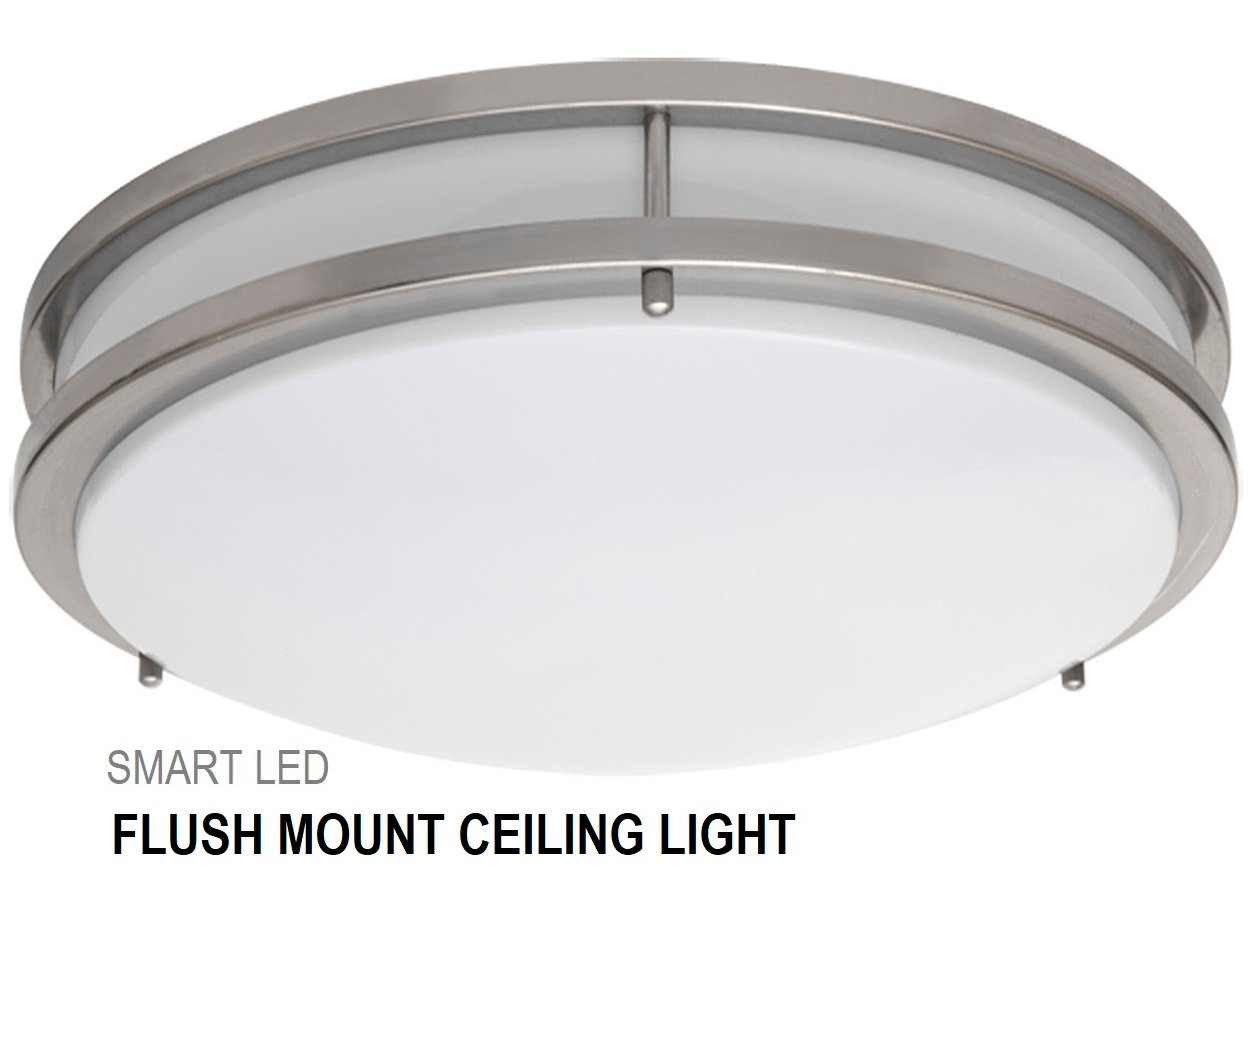 electric lights replacement flush lampholder commercial mount fixture in light white ceiling led bright flushmount p